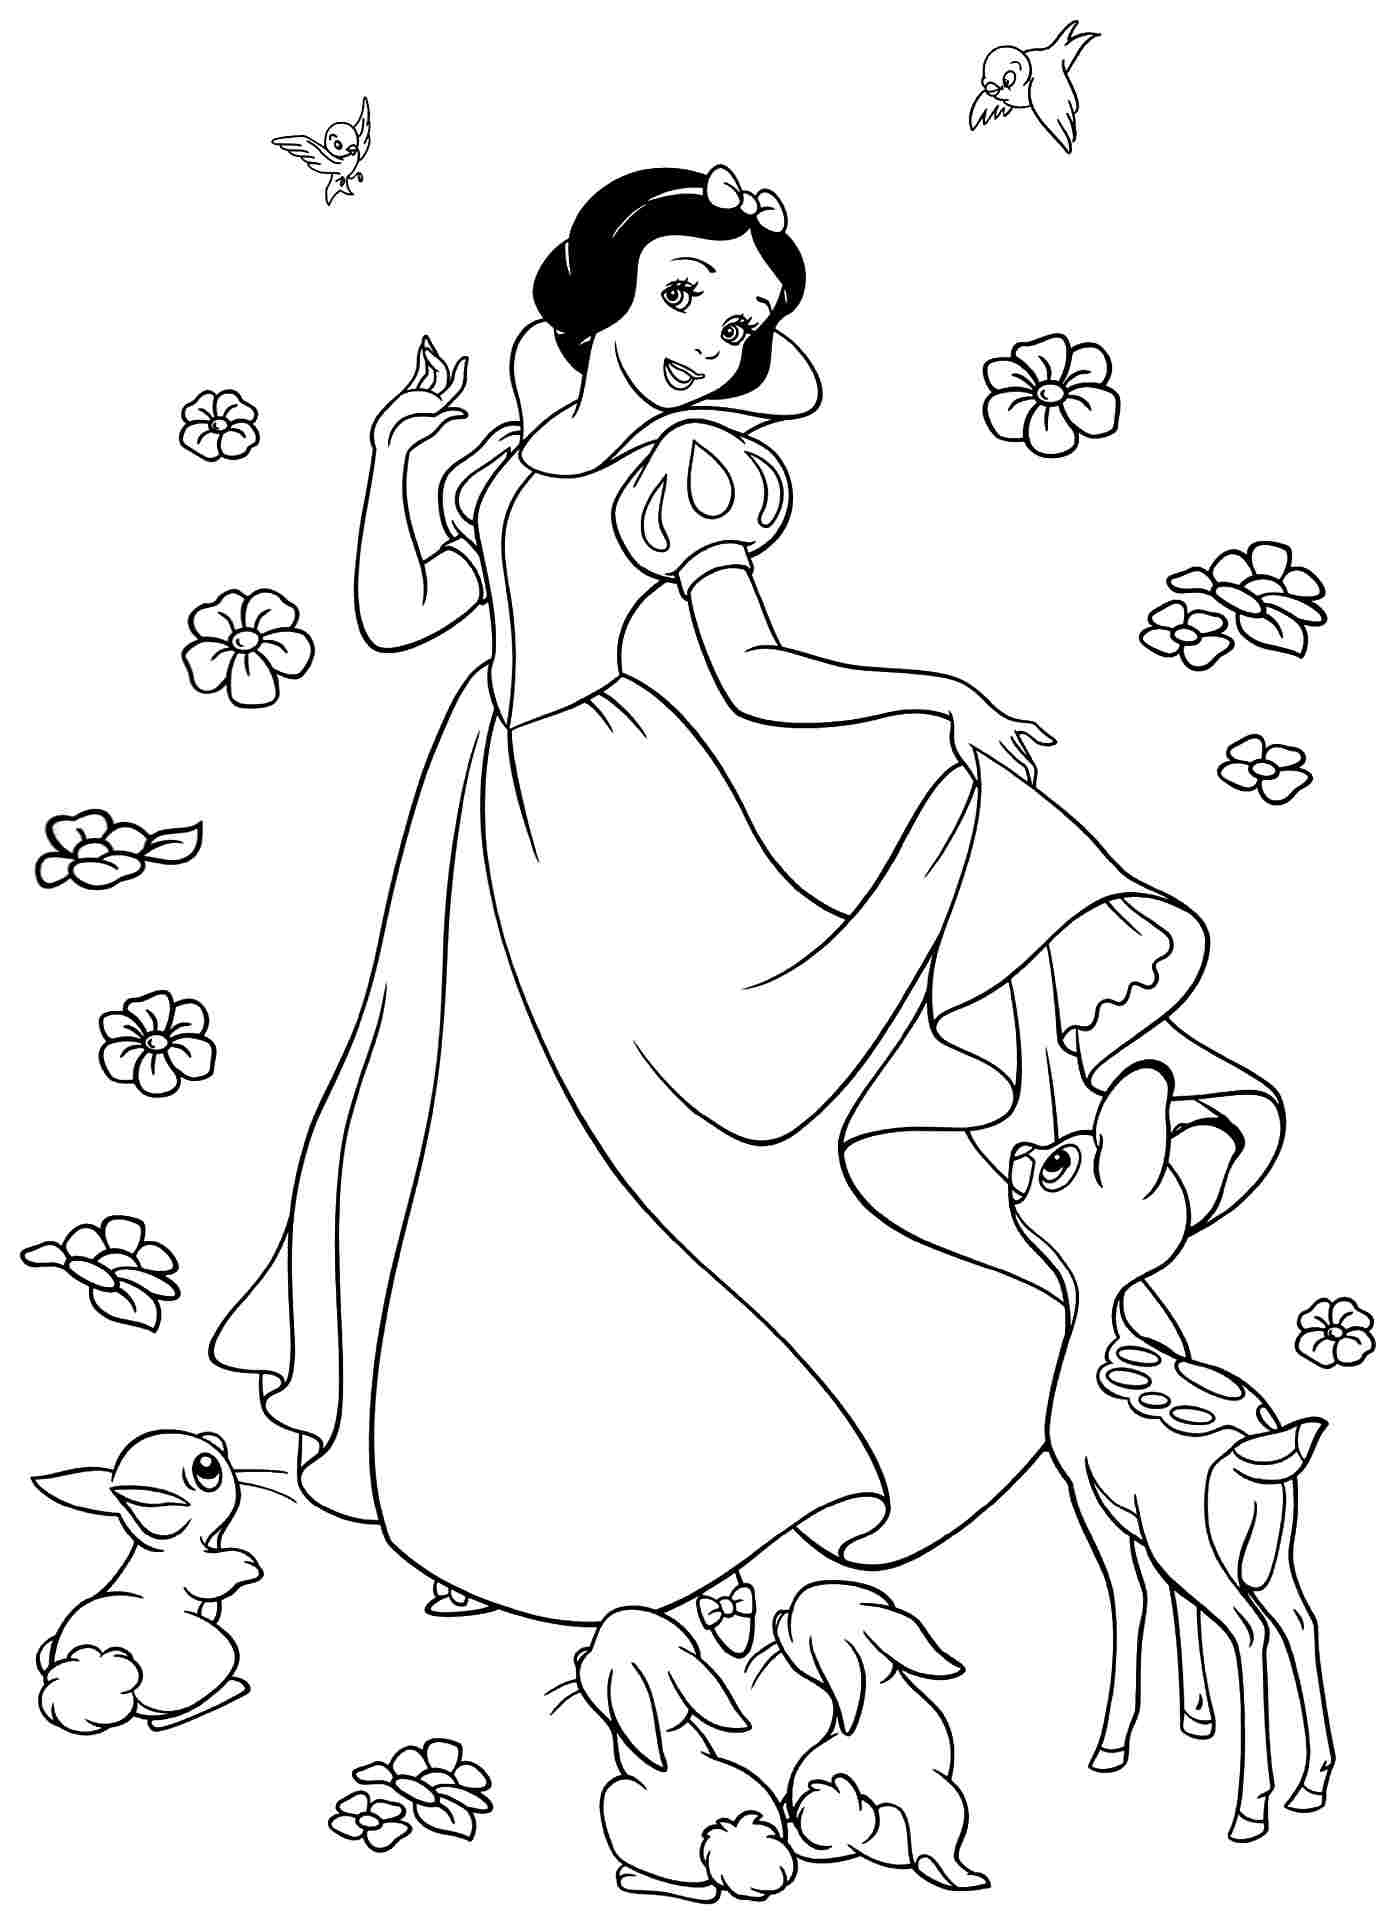 Snow White Coloring Pages To Download And Print For Free Snow White Coloring Pages